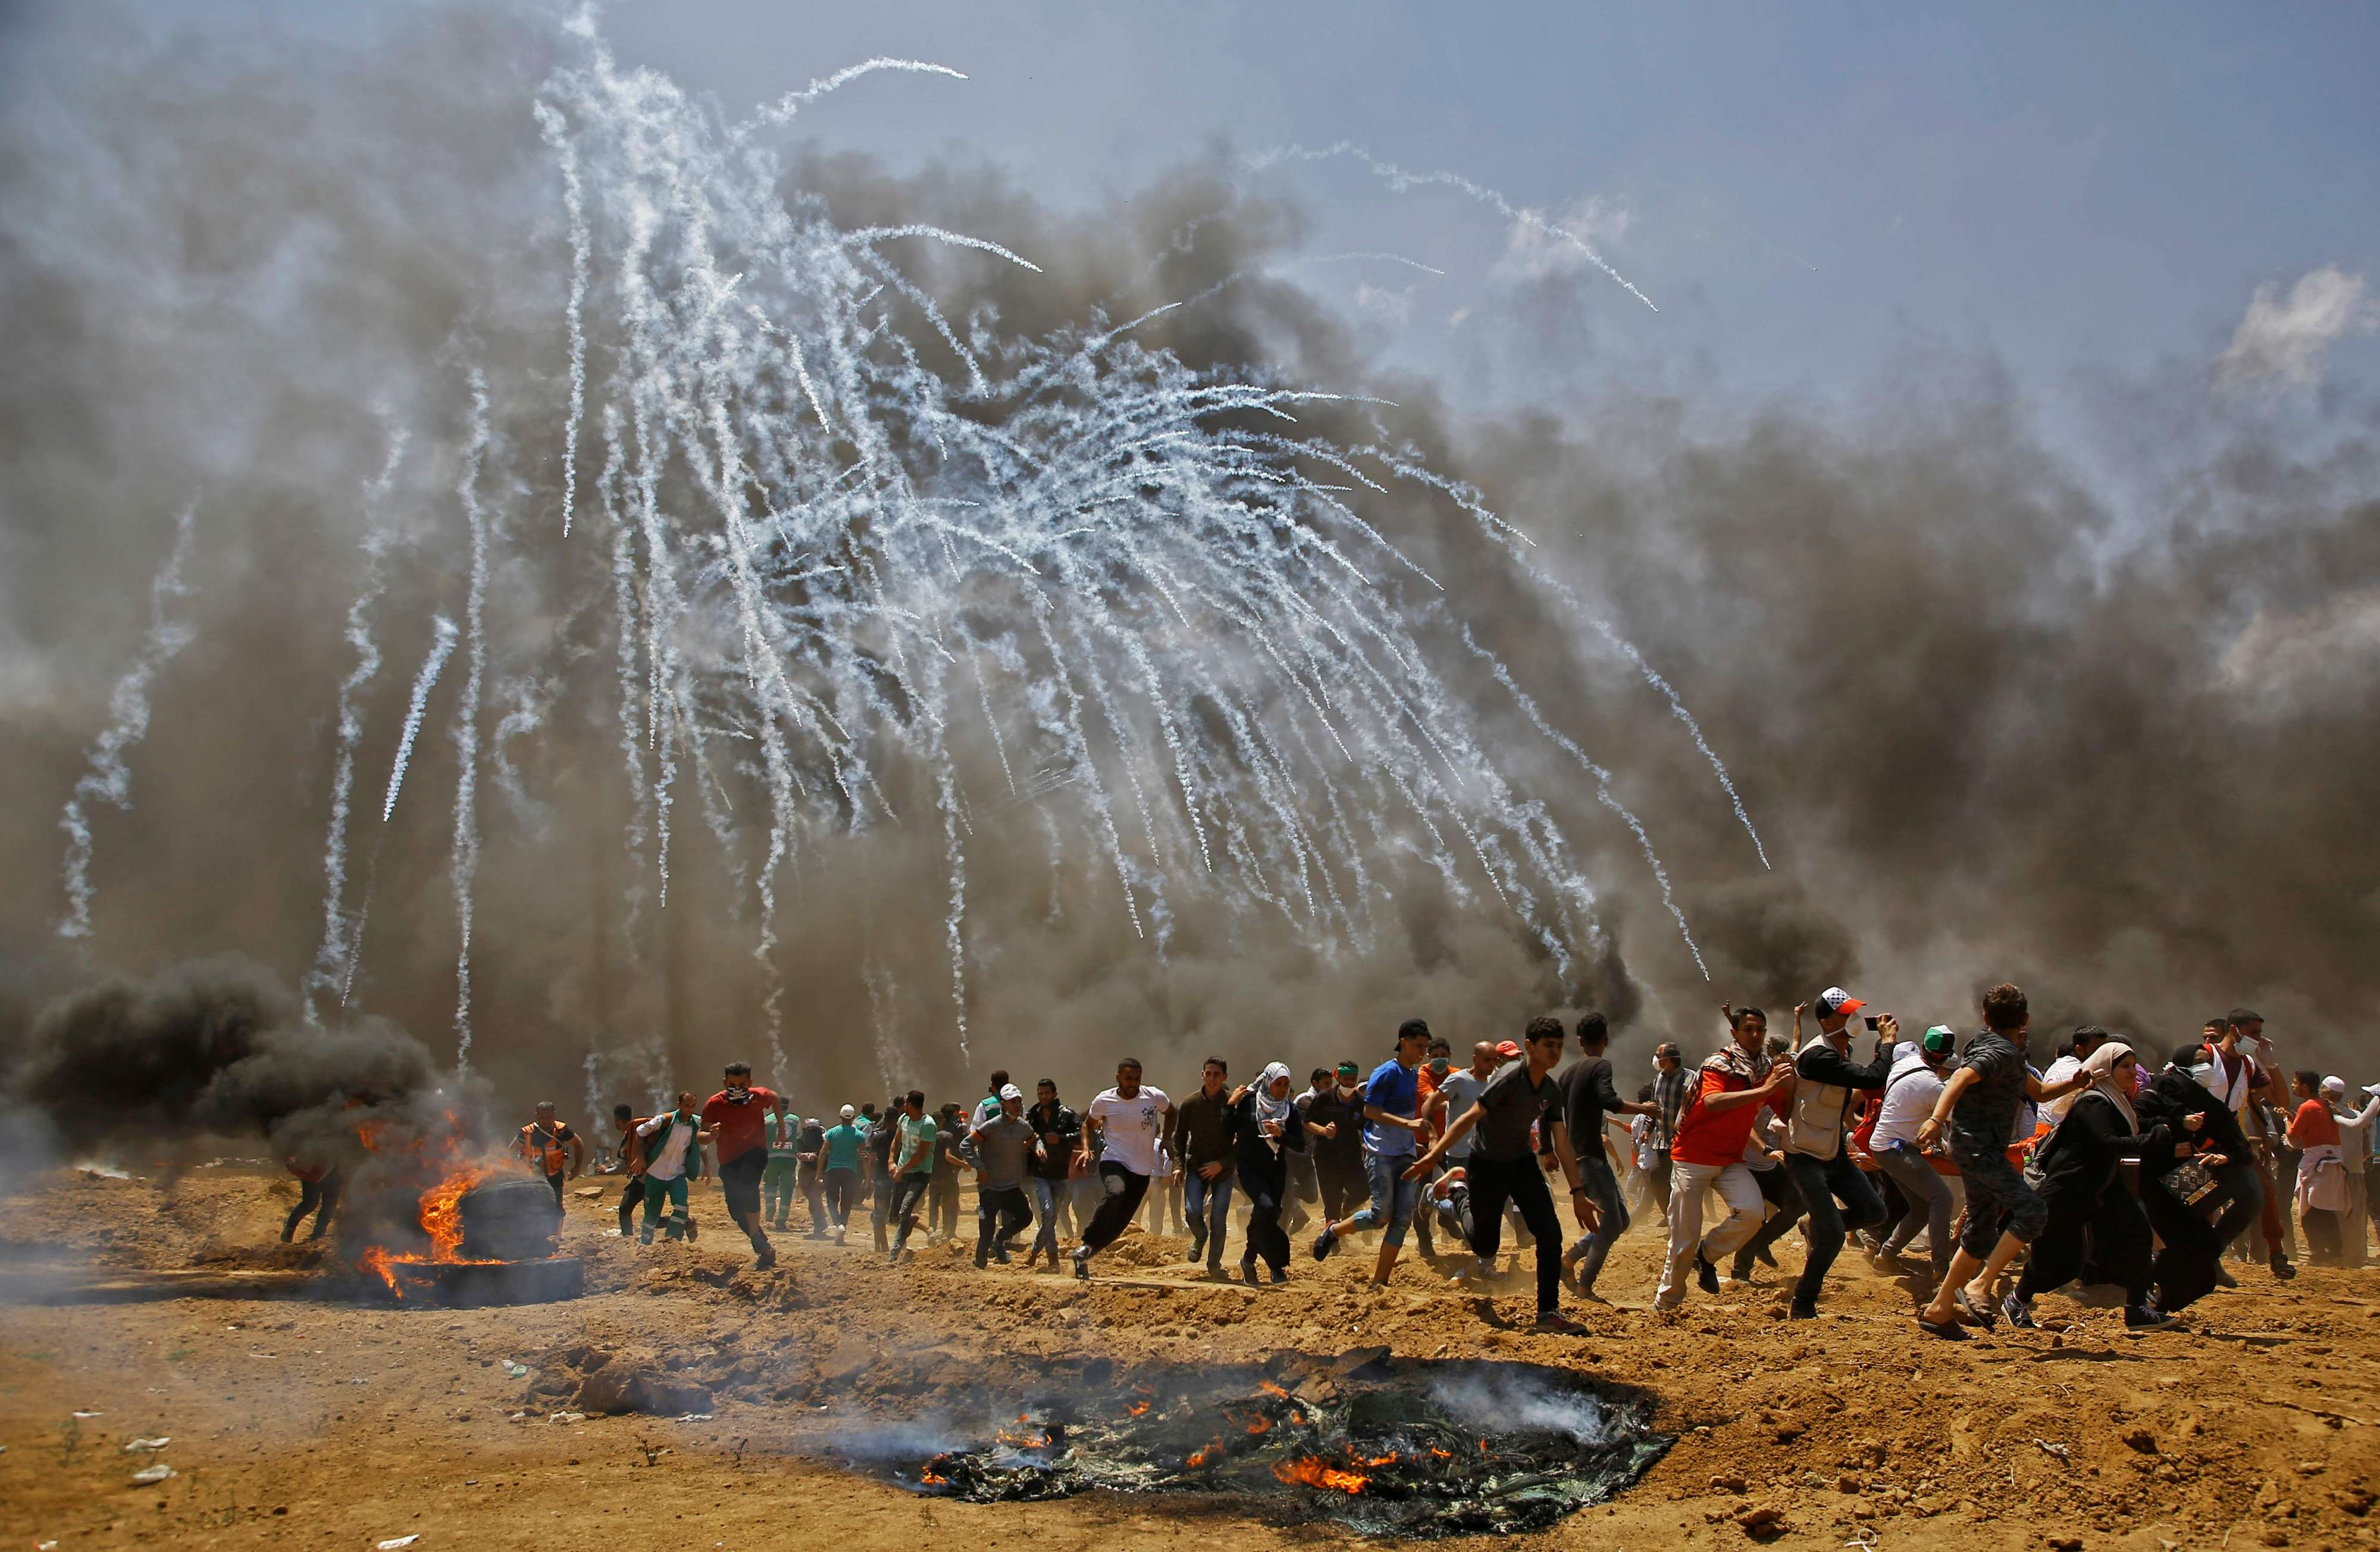 Palestinians run for cover from Israeli tear gas near the border between Israel and the Gaza Strip, on May 14. (AFP)